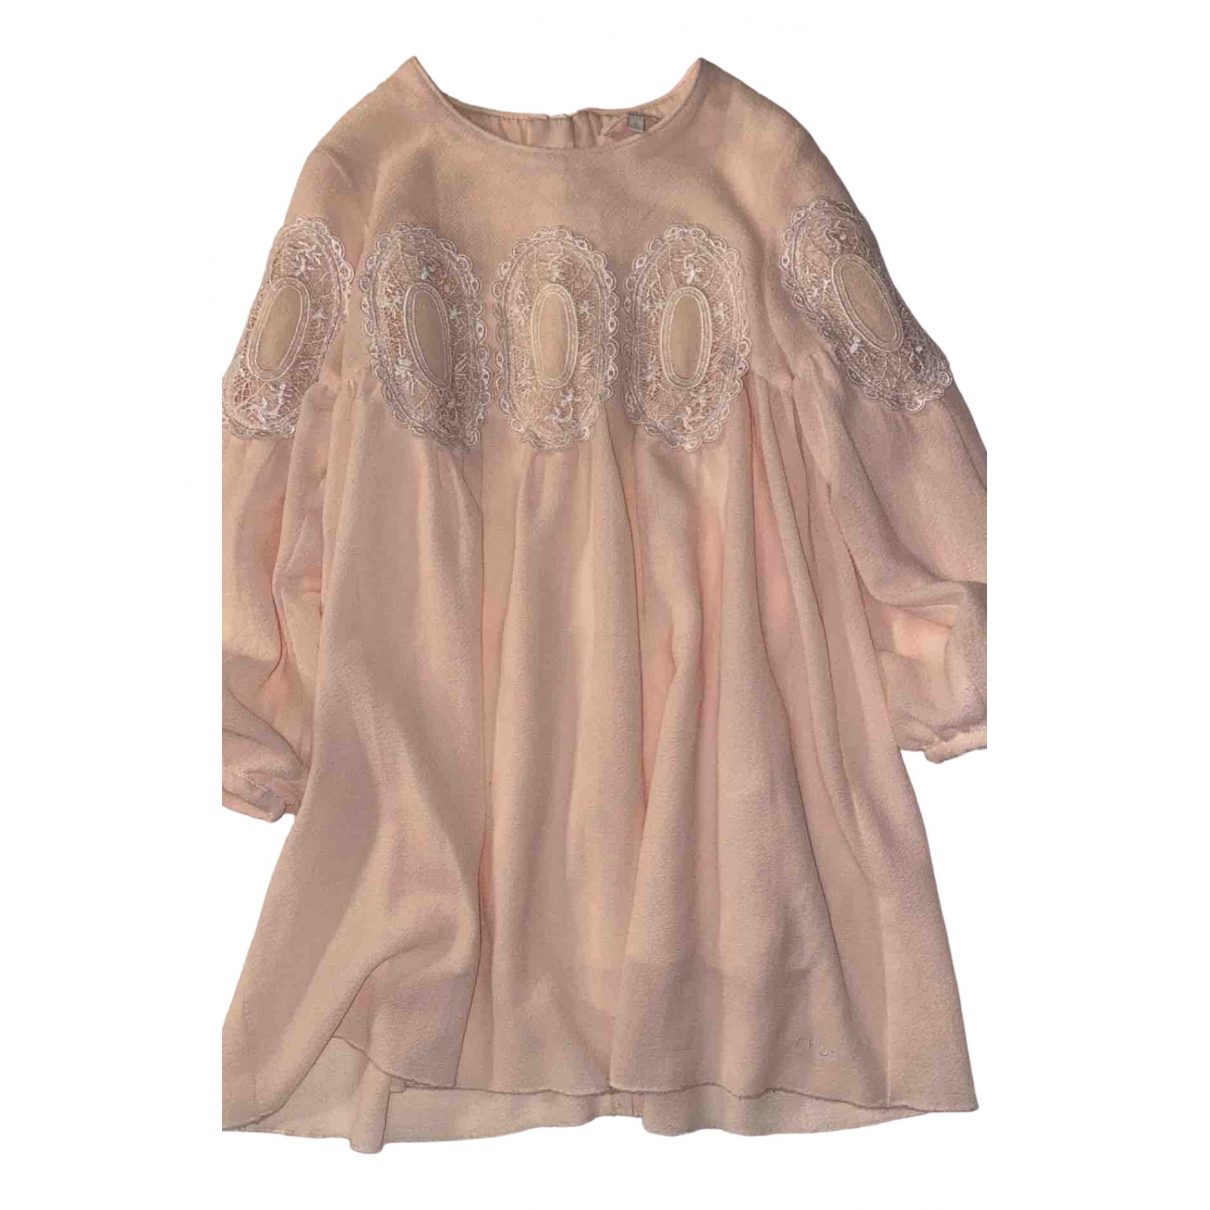 Chloé N Pink dress for Kids 4 years - until 40 inches UK